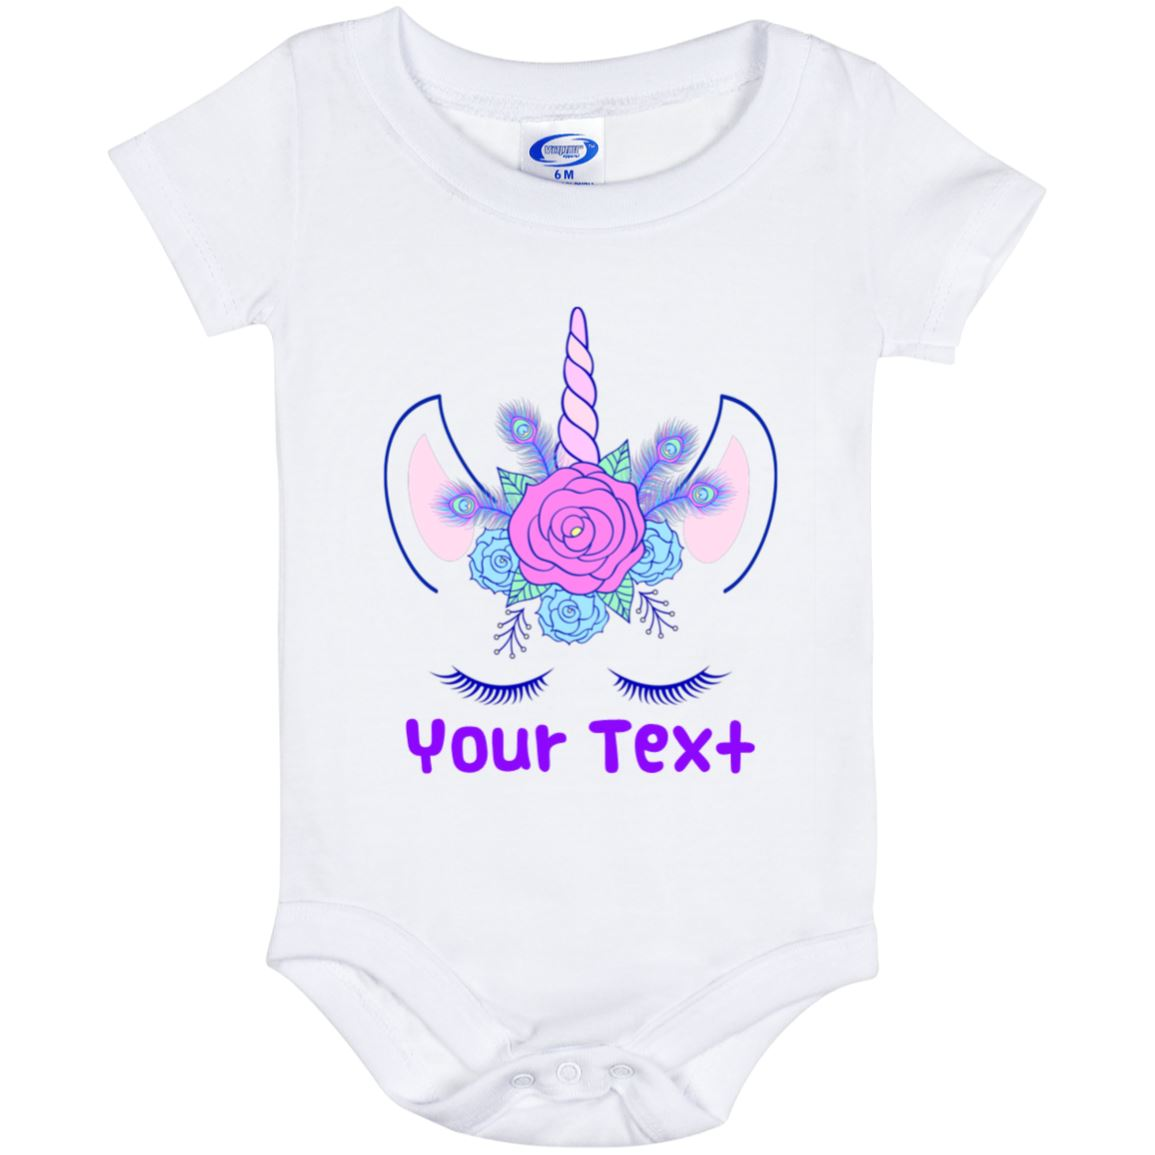 Personalized Unicorn Flowers Baby Onesie Unicorn Baby Items 6 Month